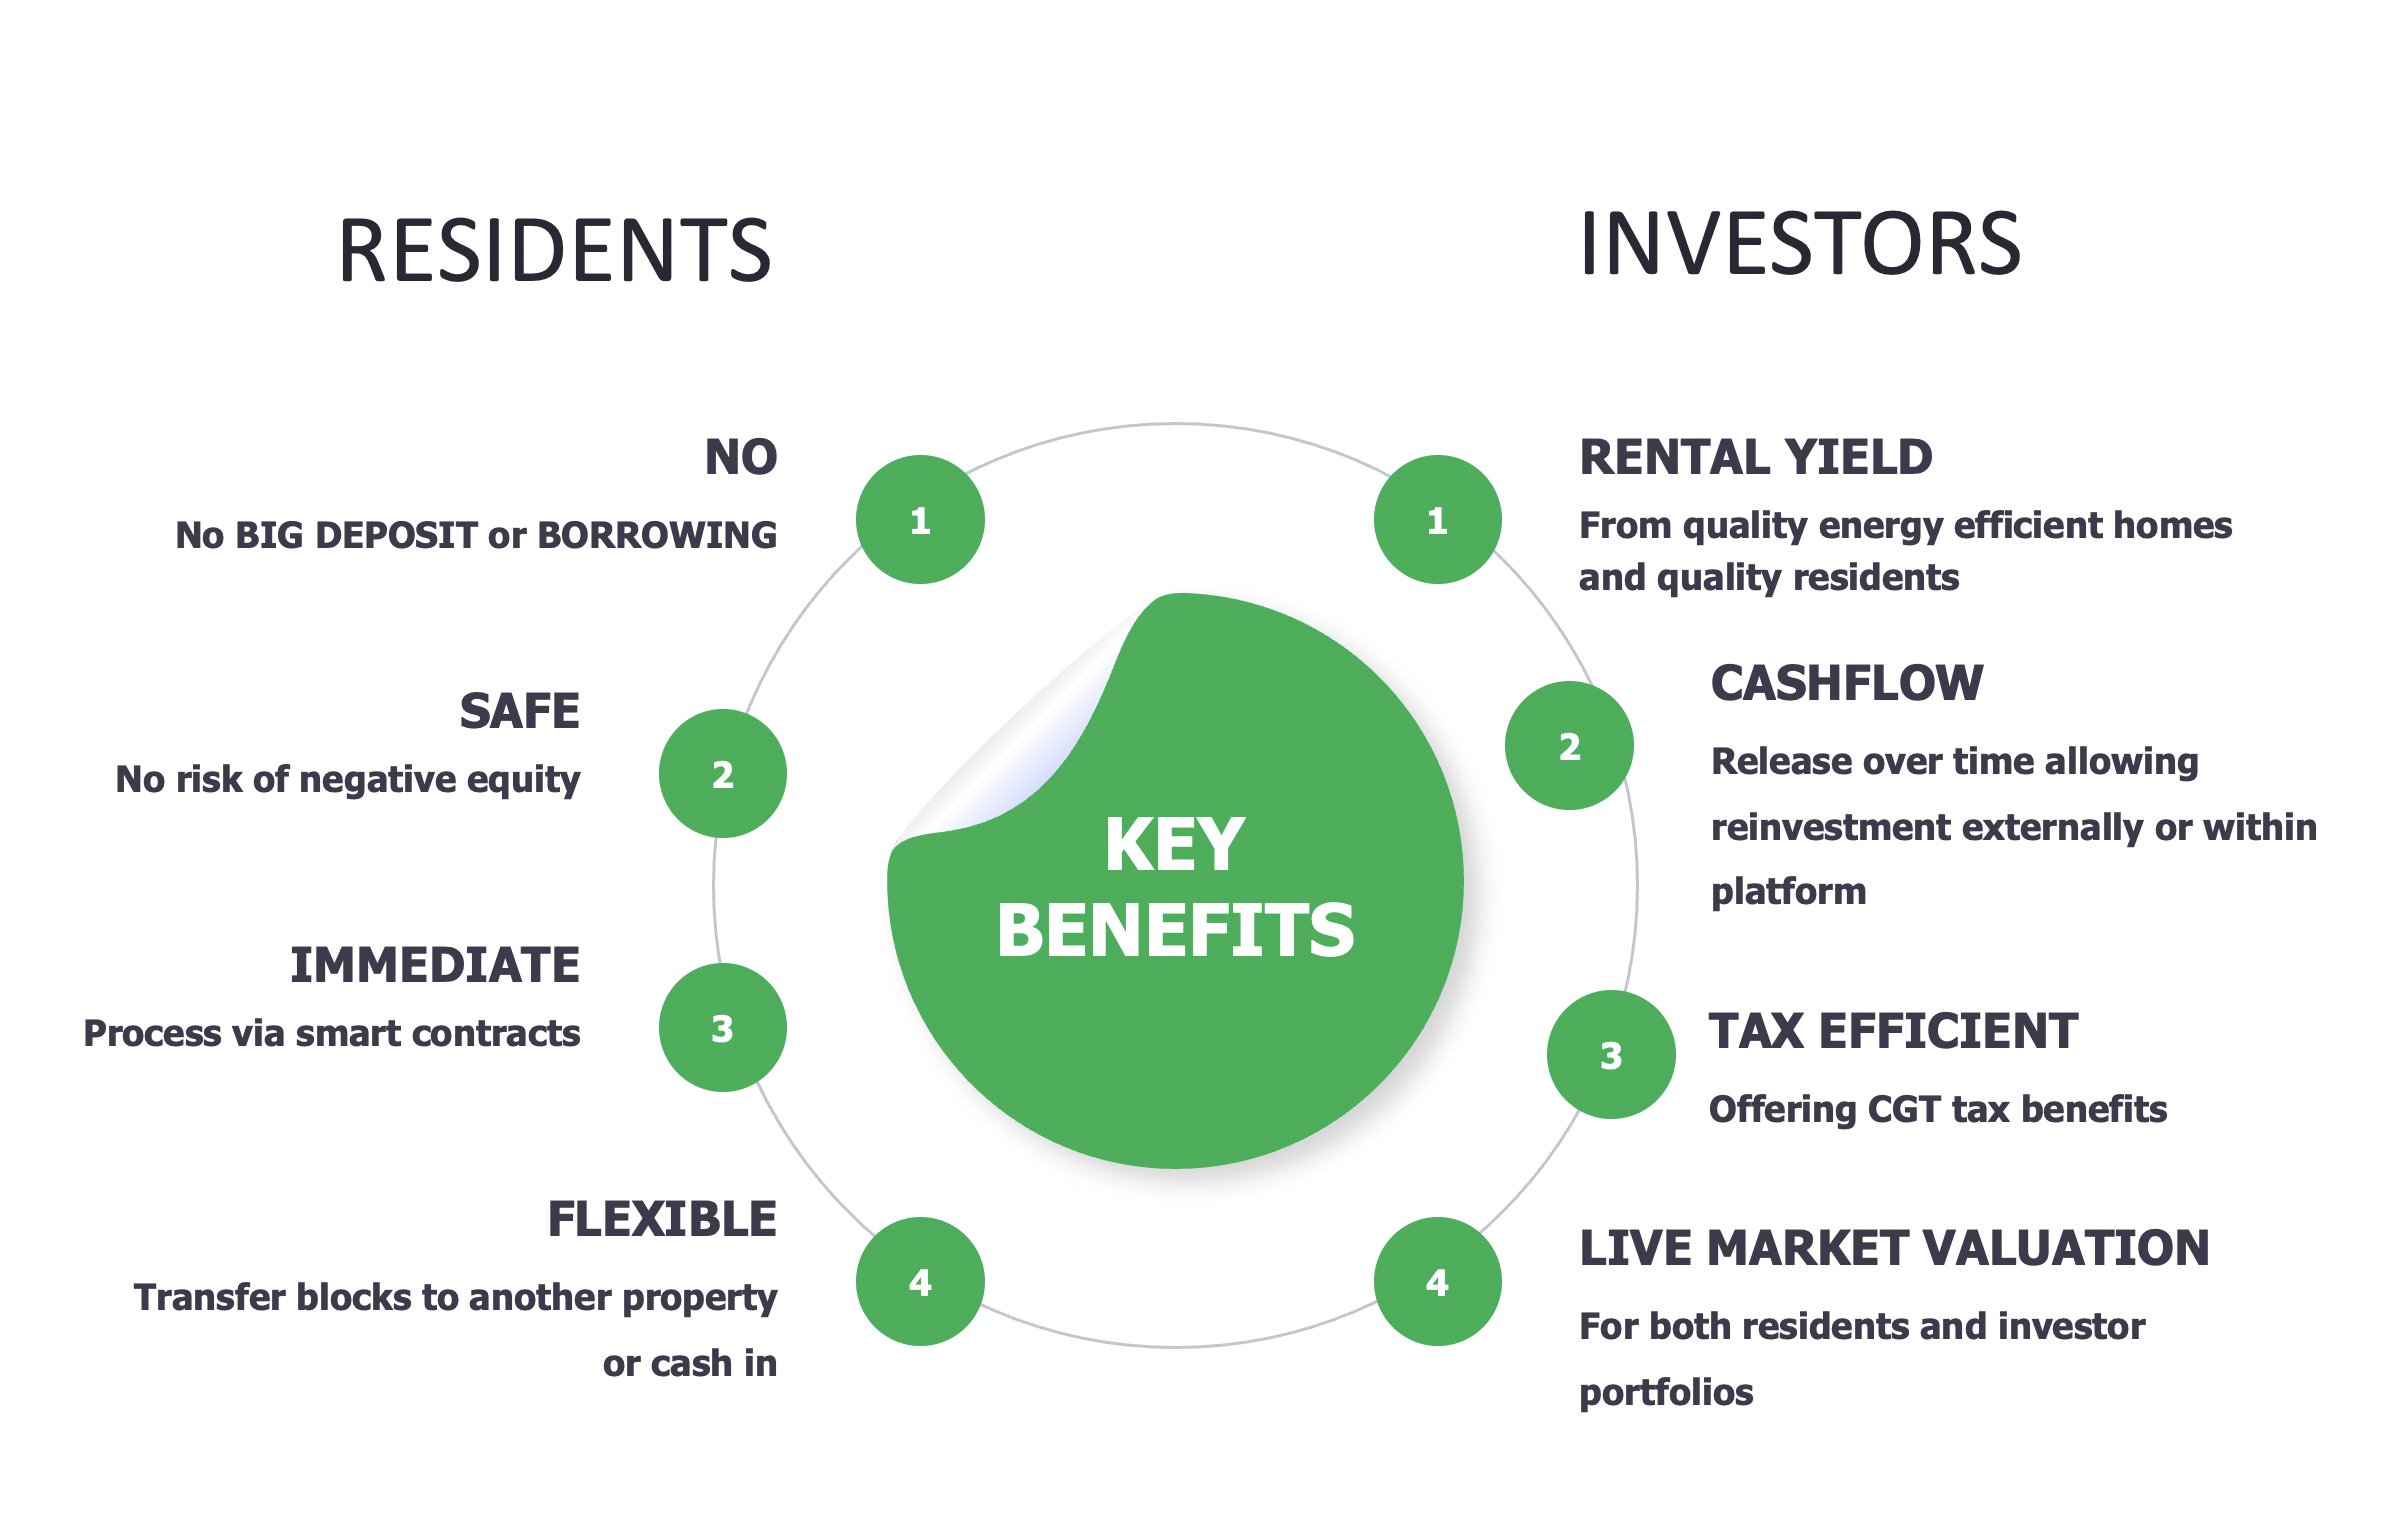 Graphic showing benefits to residents and investors. For residents no deposits, no chance of negative equity fast process and flexible. For investors there is rental yield and cashflow. It is tax efficient for residents and investors and both have live update market valuations provided.